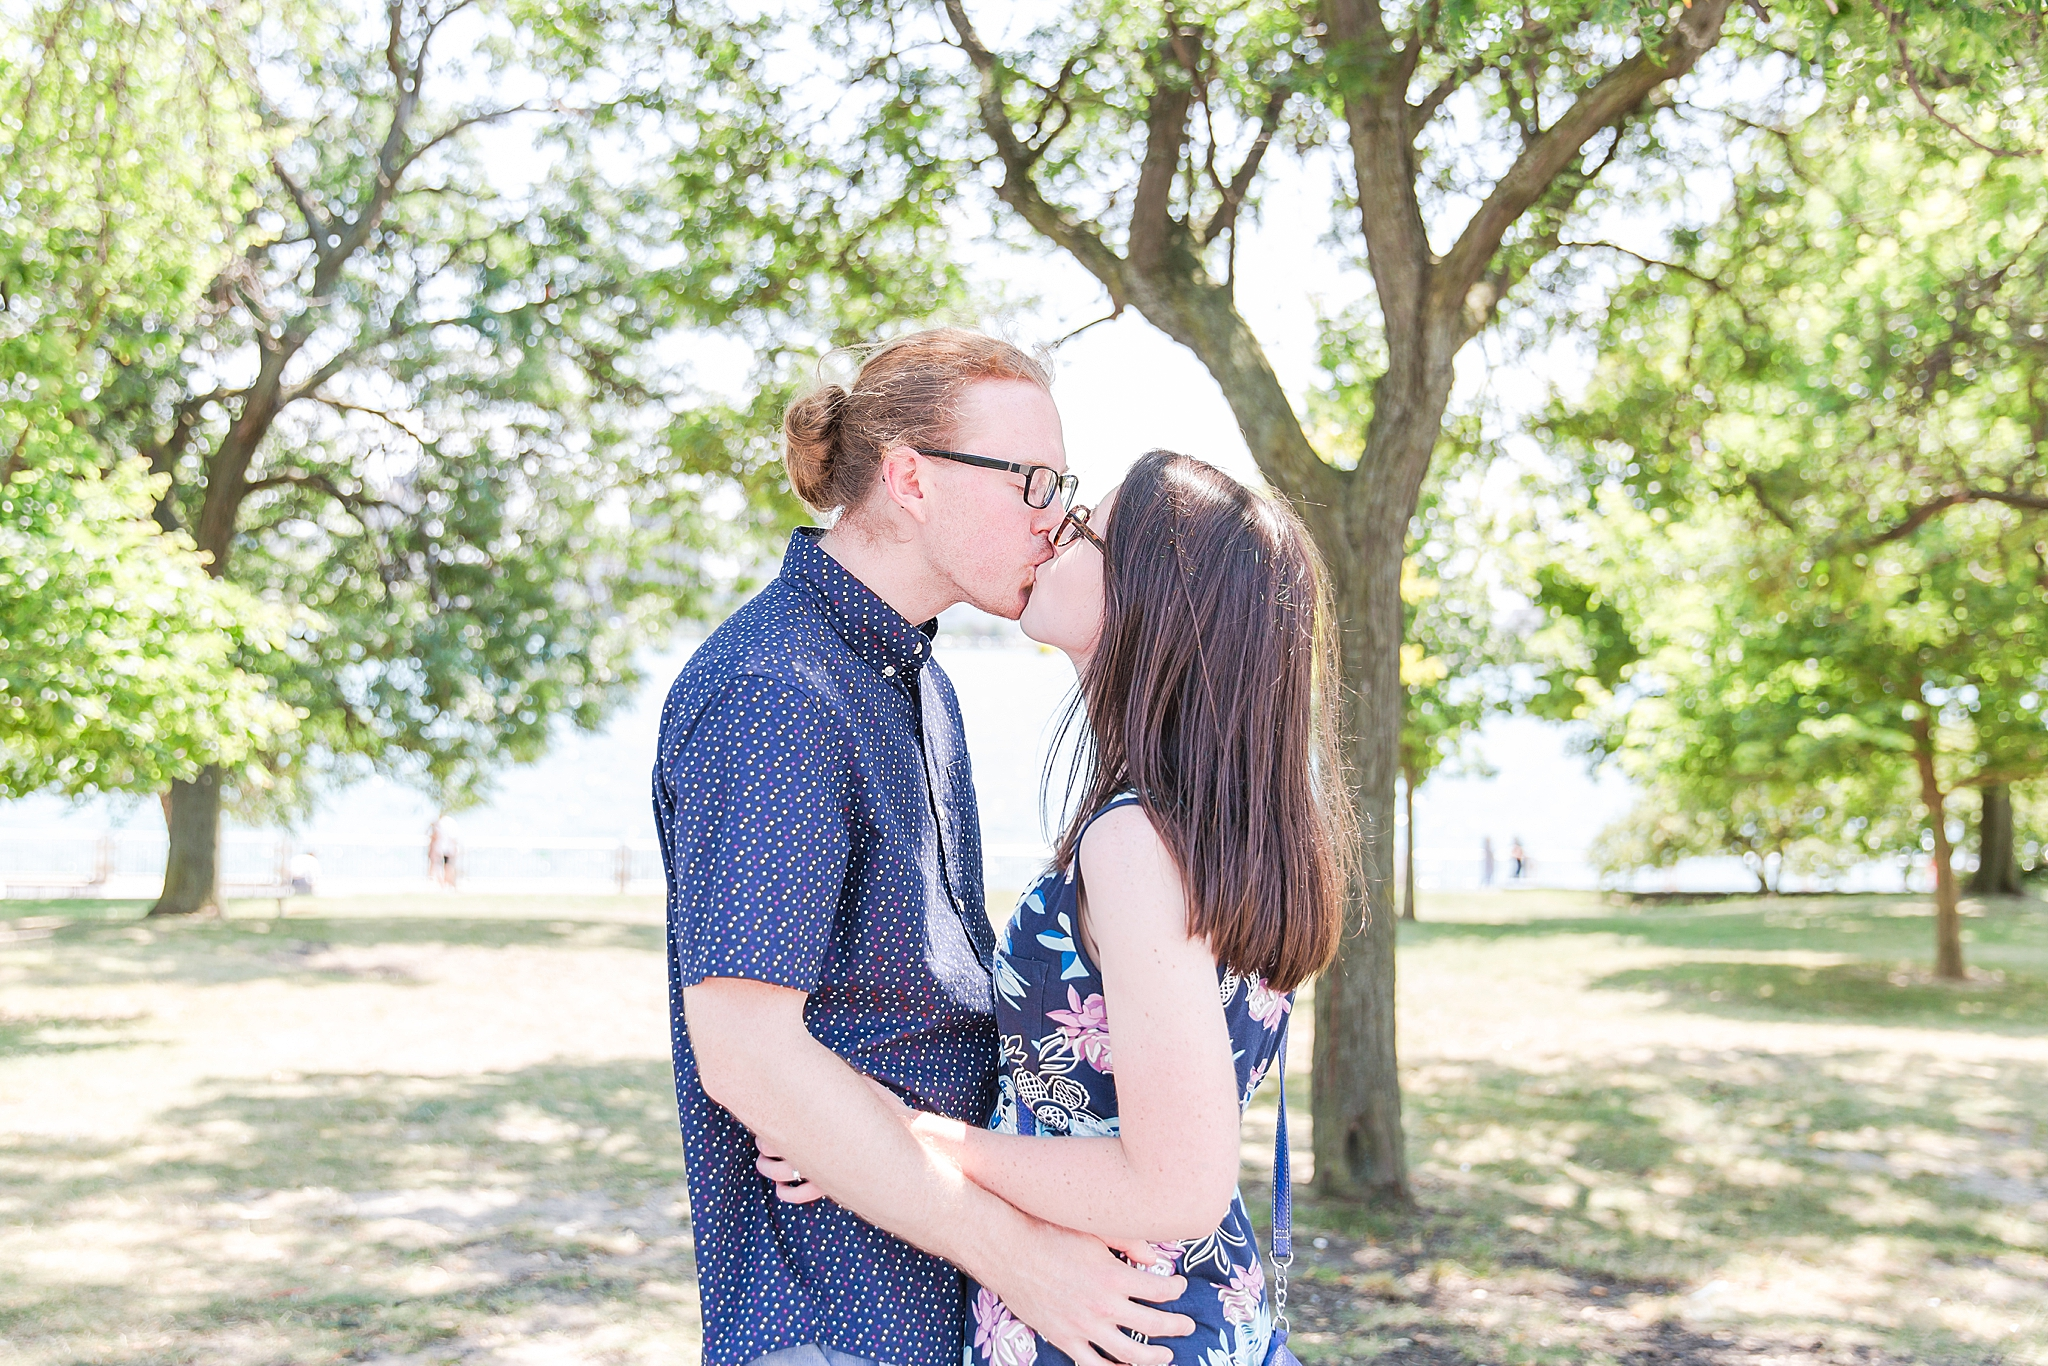 detroit-wedding-photographer-surprise-proposal-in-downtown-detroit-josh-taylor-by-courtney-carolyn-photography_0009.jpg